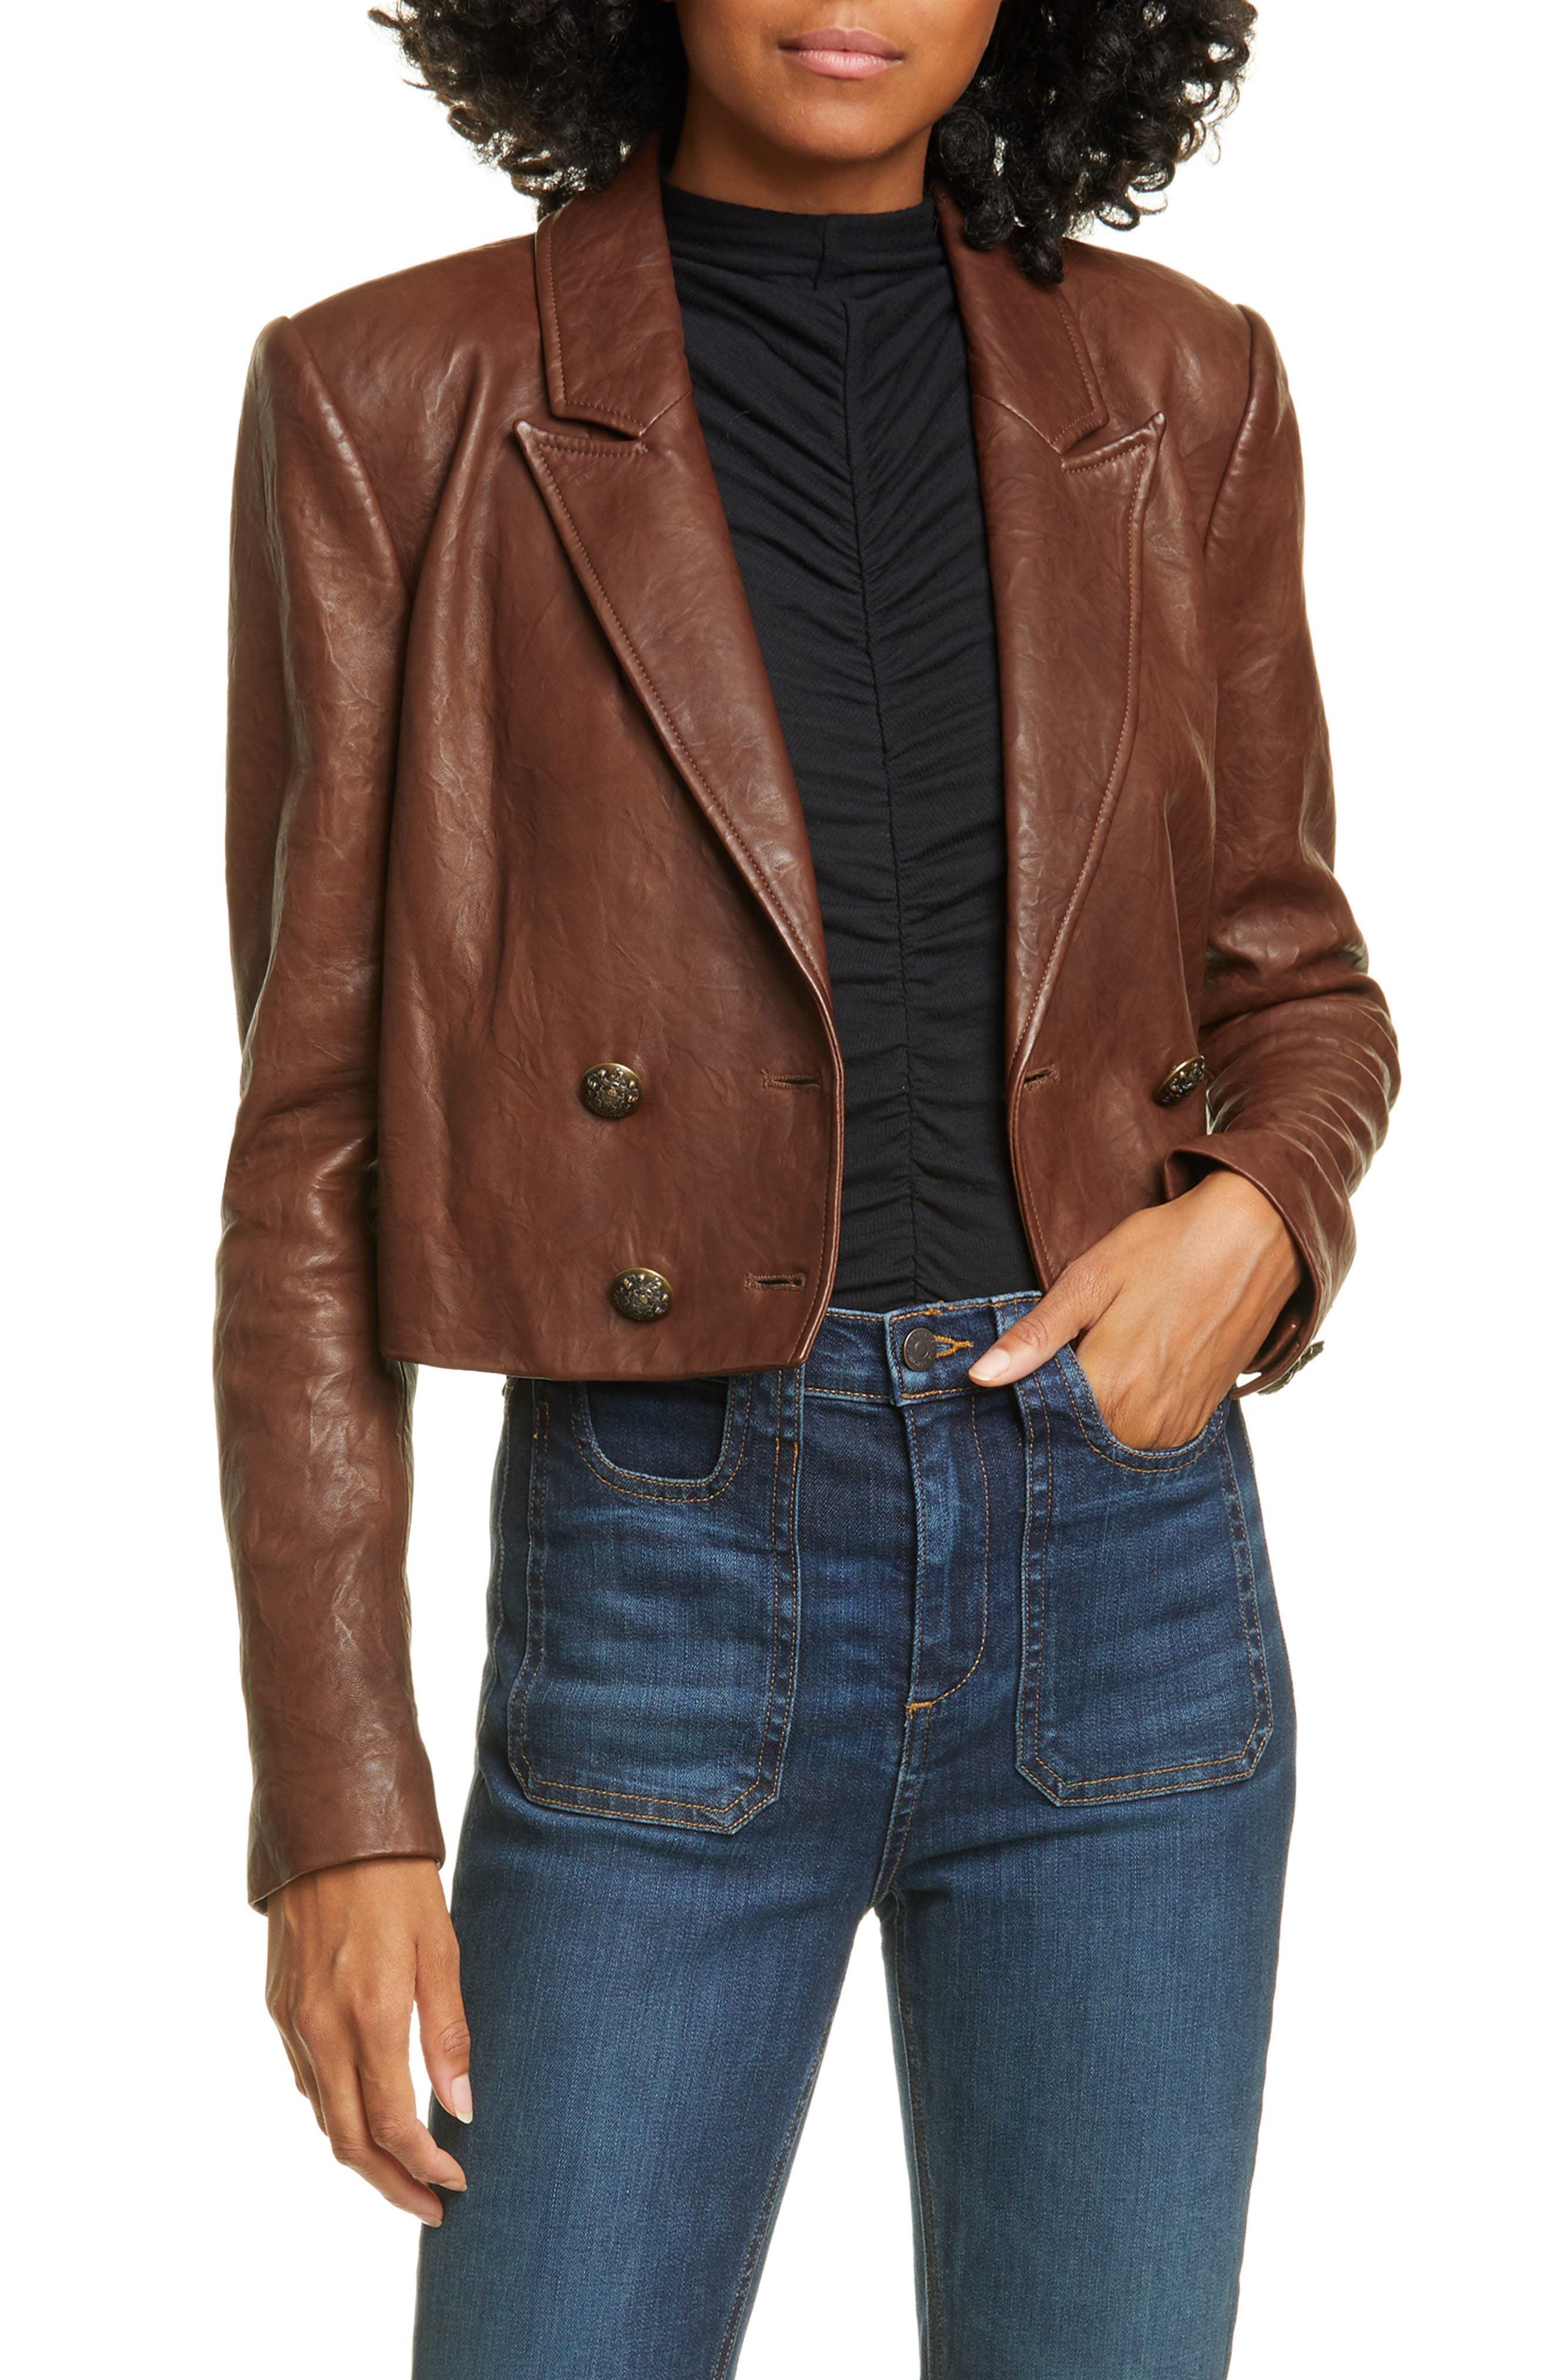 Theo Double Breasted Crop Leather Jacket by Veronica Beard